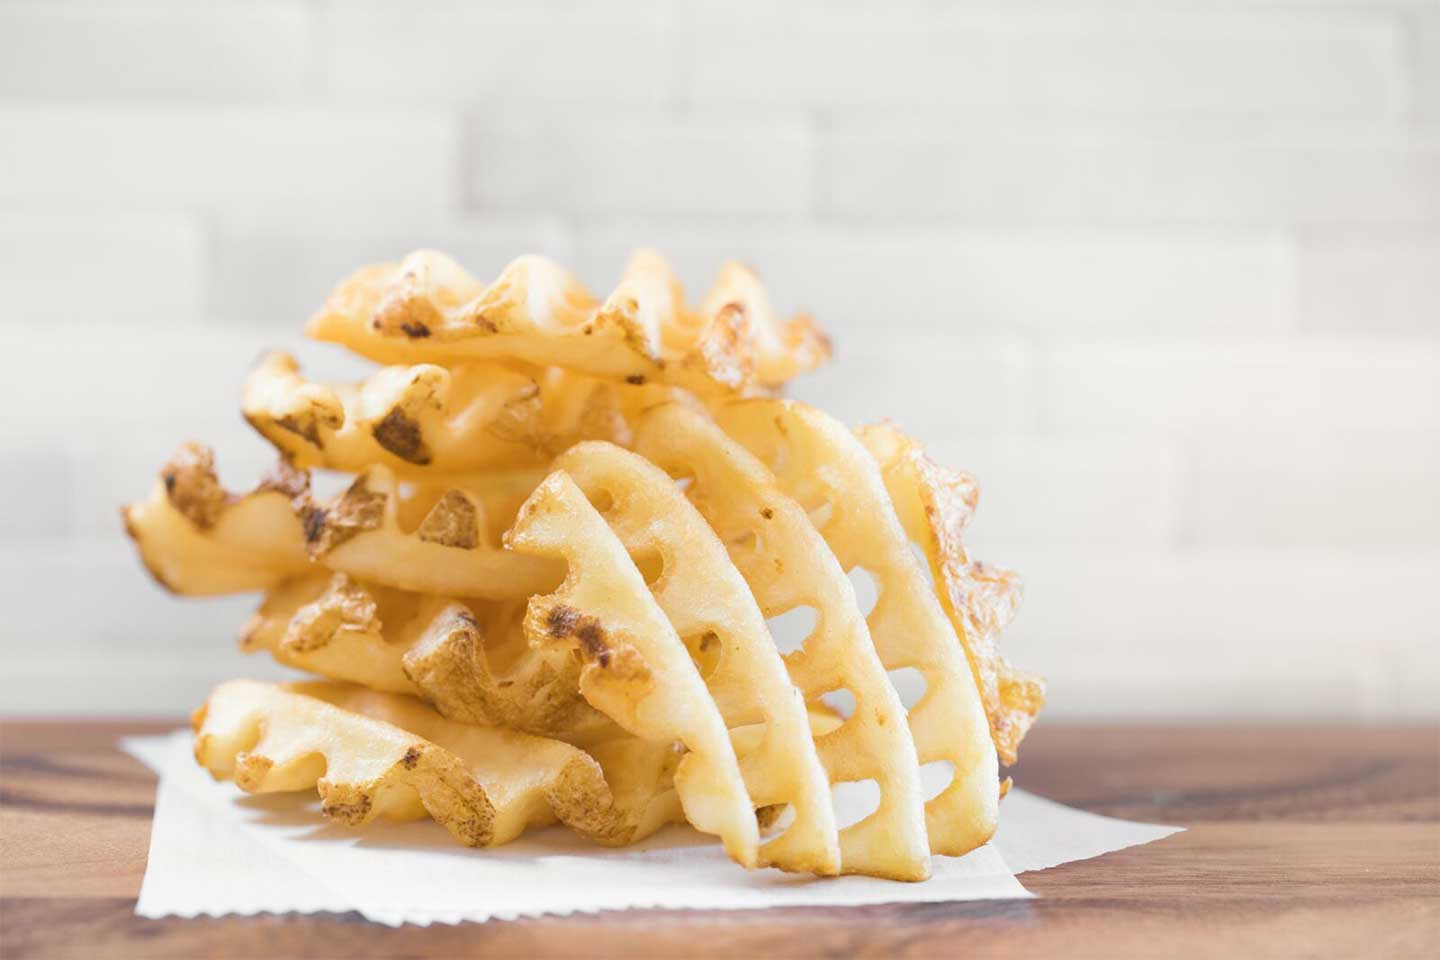 Chick-fil-A Waffle Fries on a white napkin